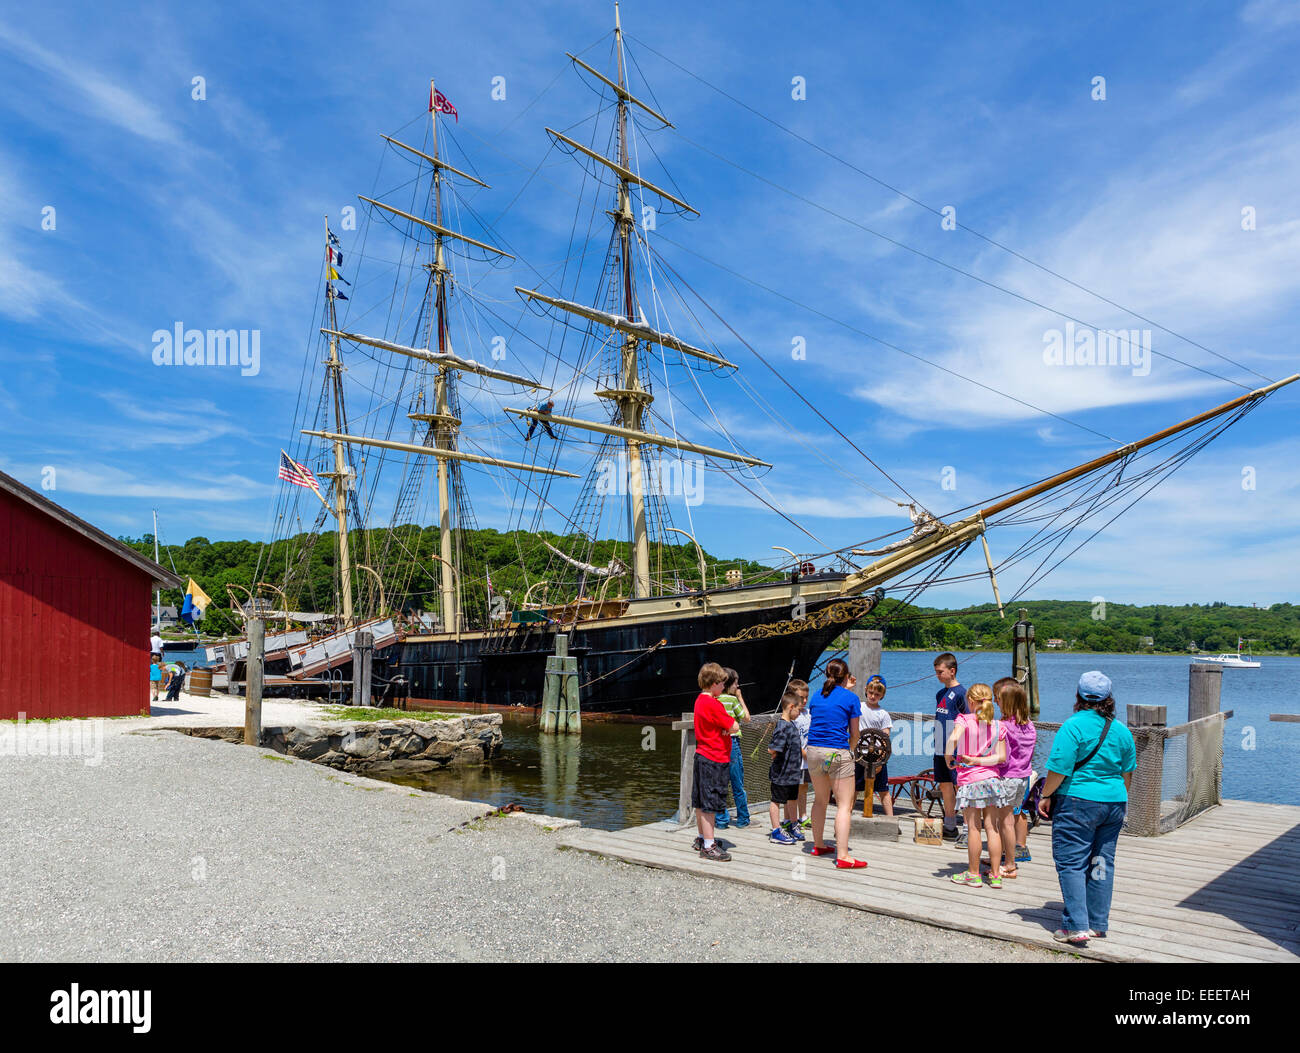 Group of children in front of Joseph Conrad square-rigged museum ship, Mystic Seaport maritime museum, Mystic, Connecticut, - Stock Image